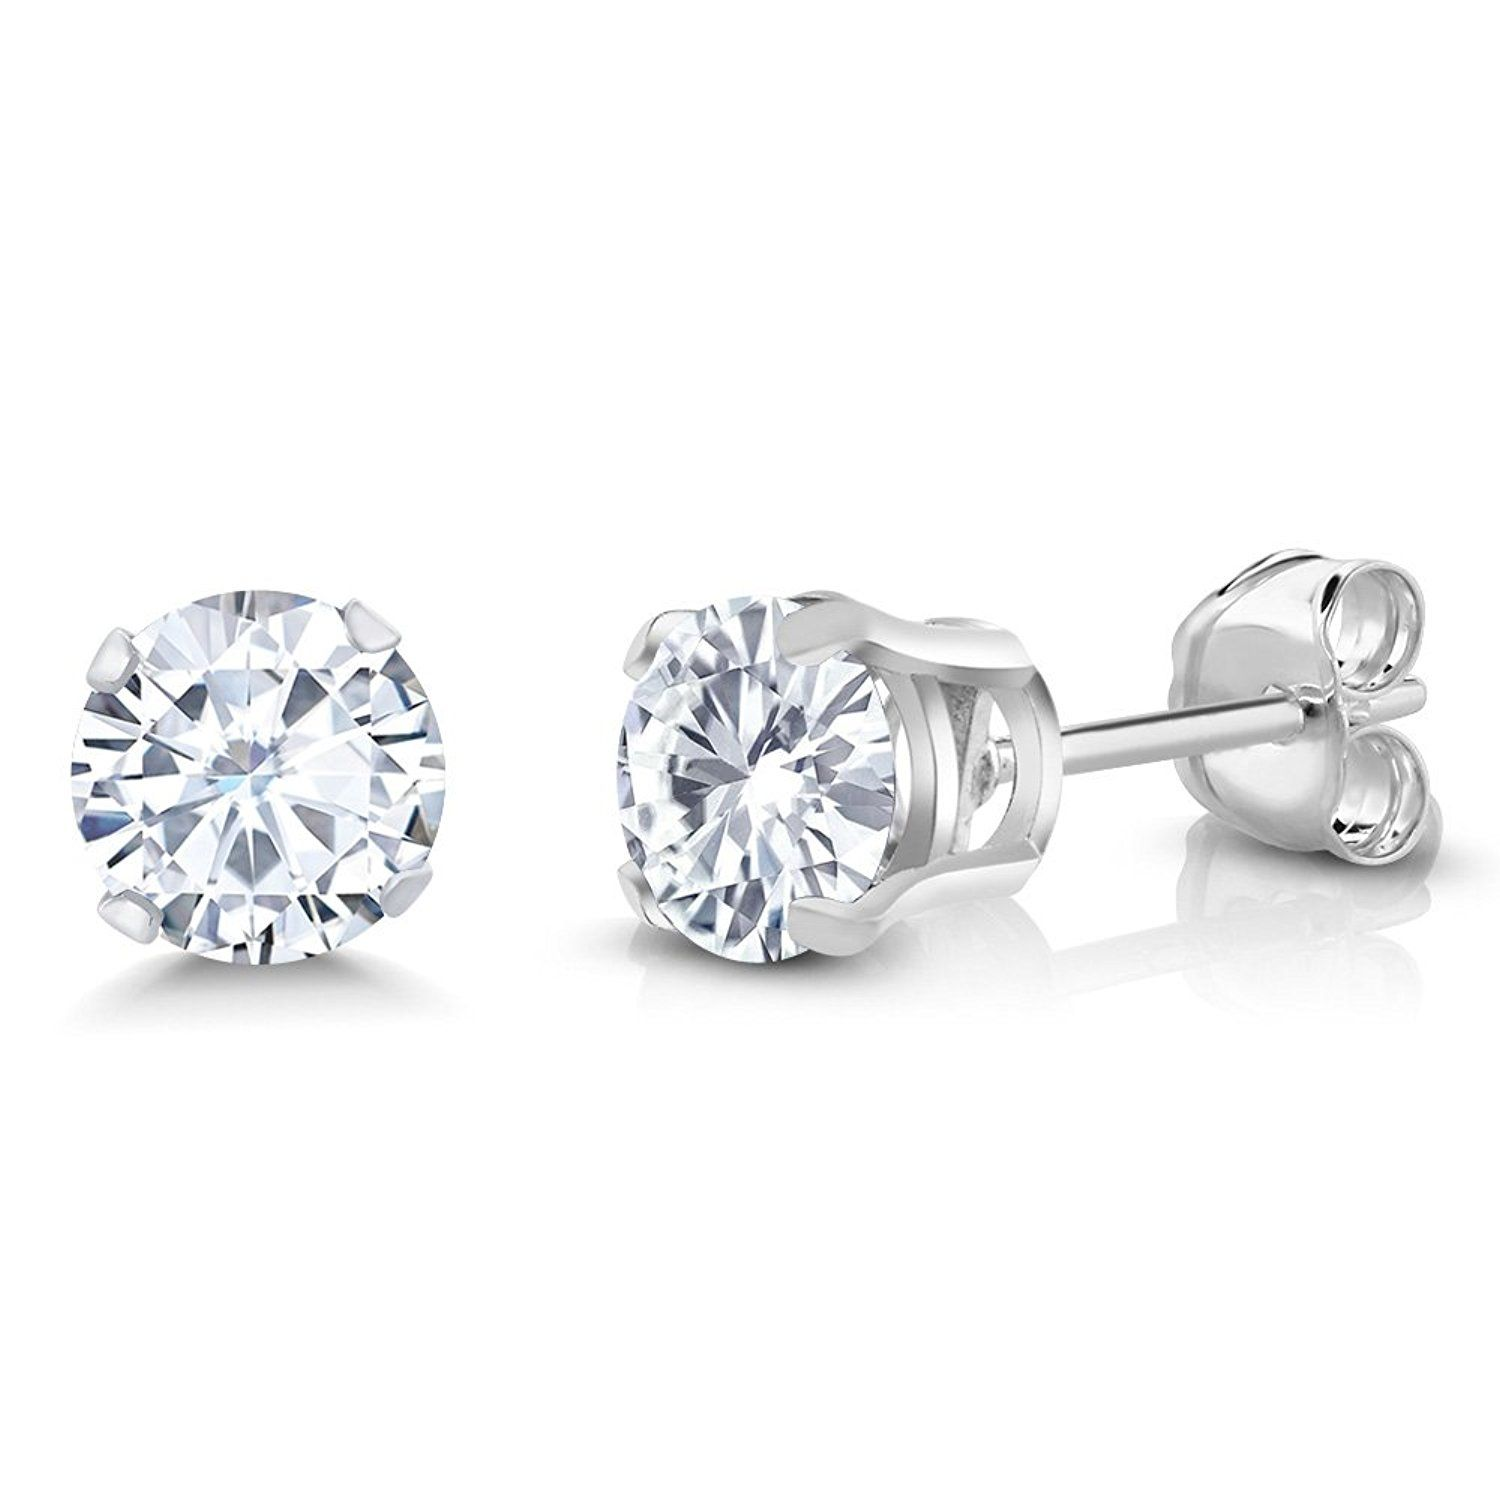 earrings in dsc weight more total studs moissanite carat tb brilliant stud set views